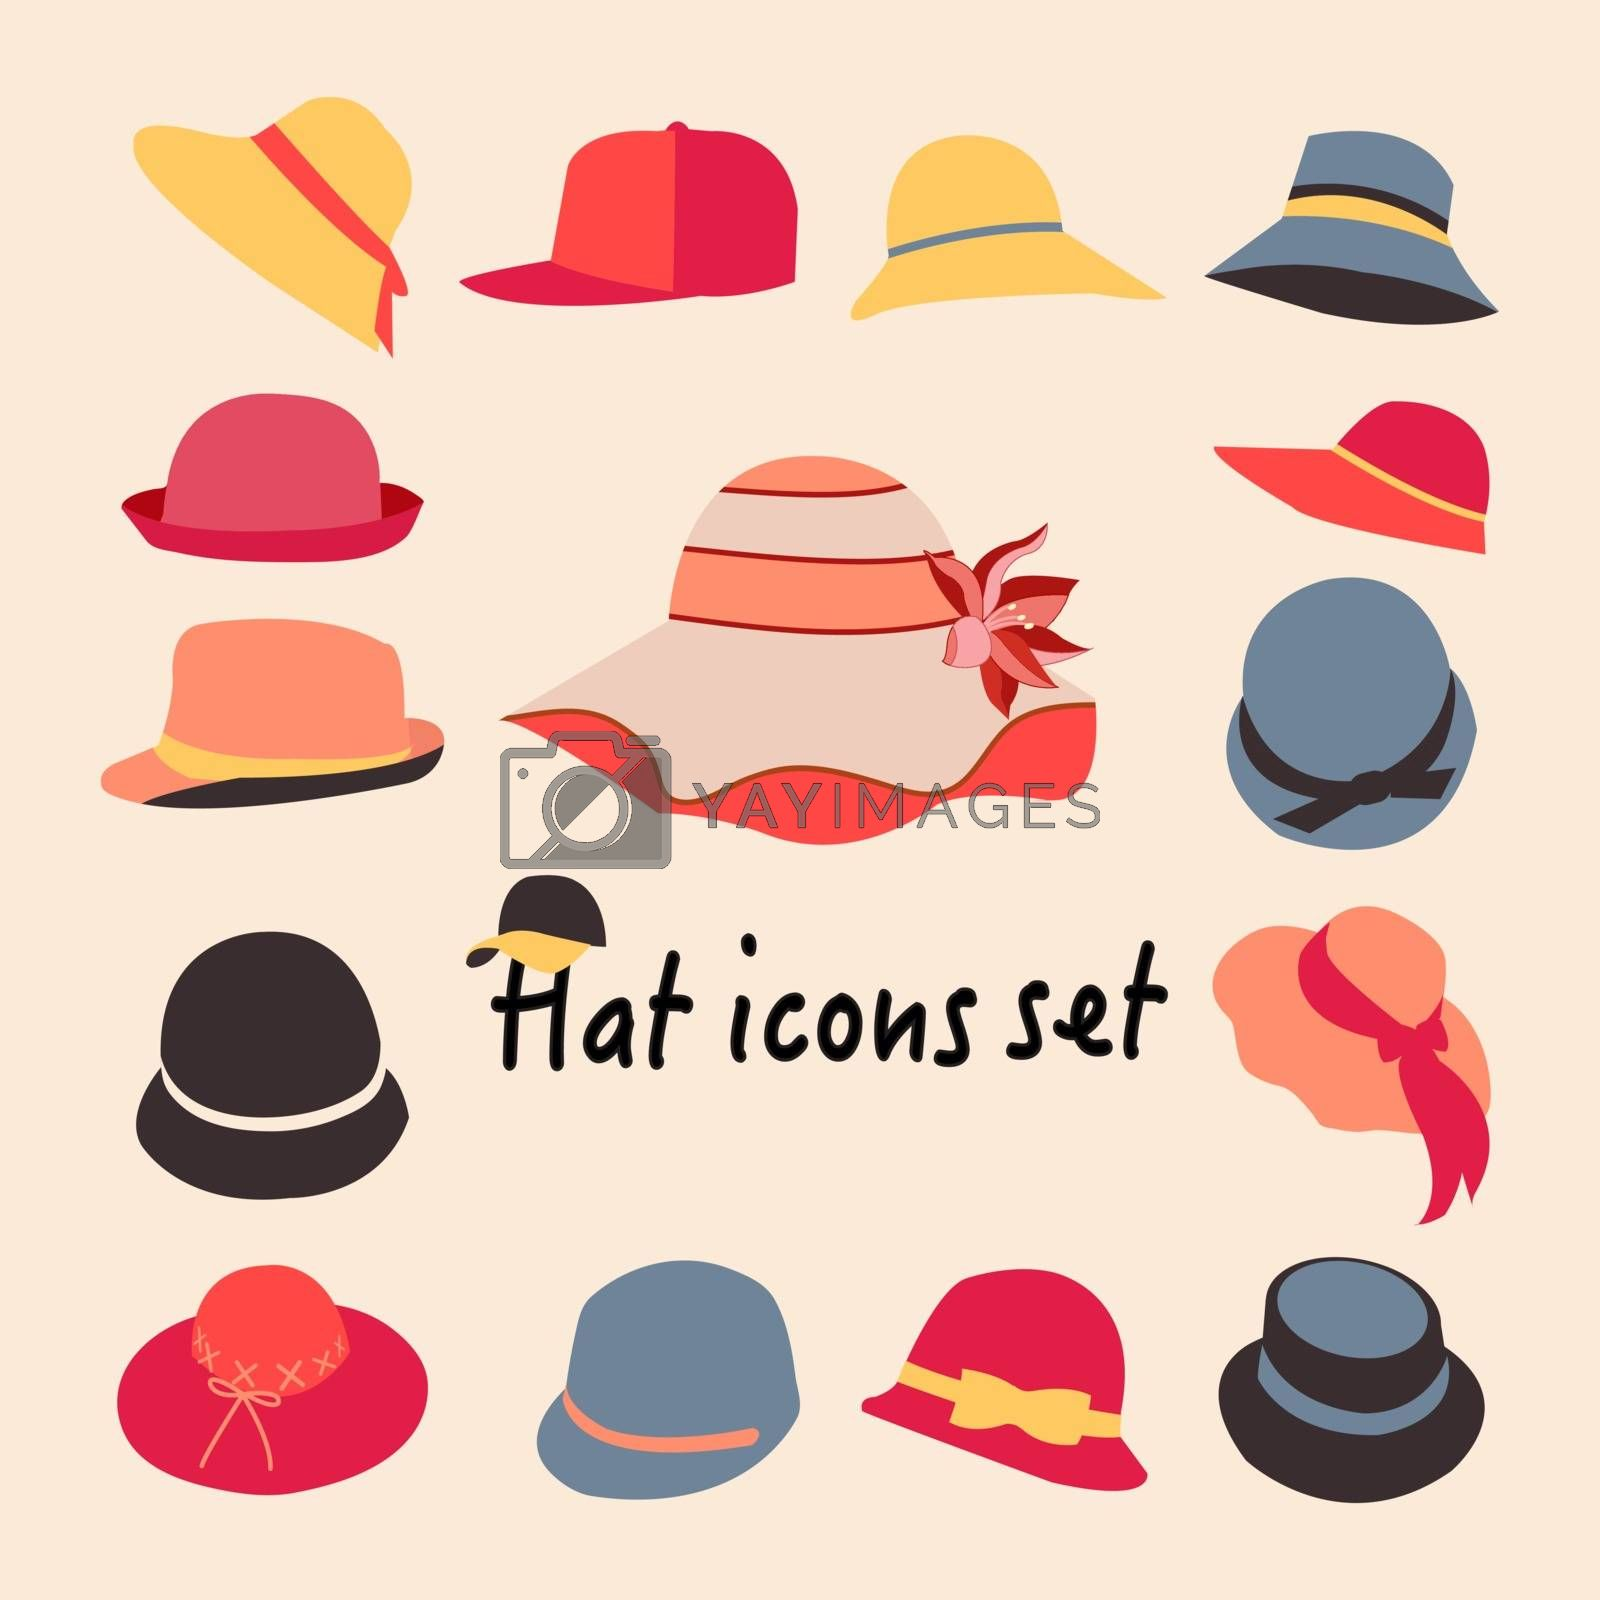 Vector collection of hats for men and women icons set, different types of hats